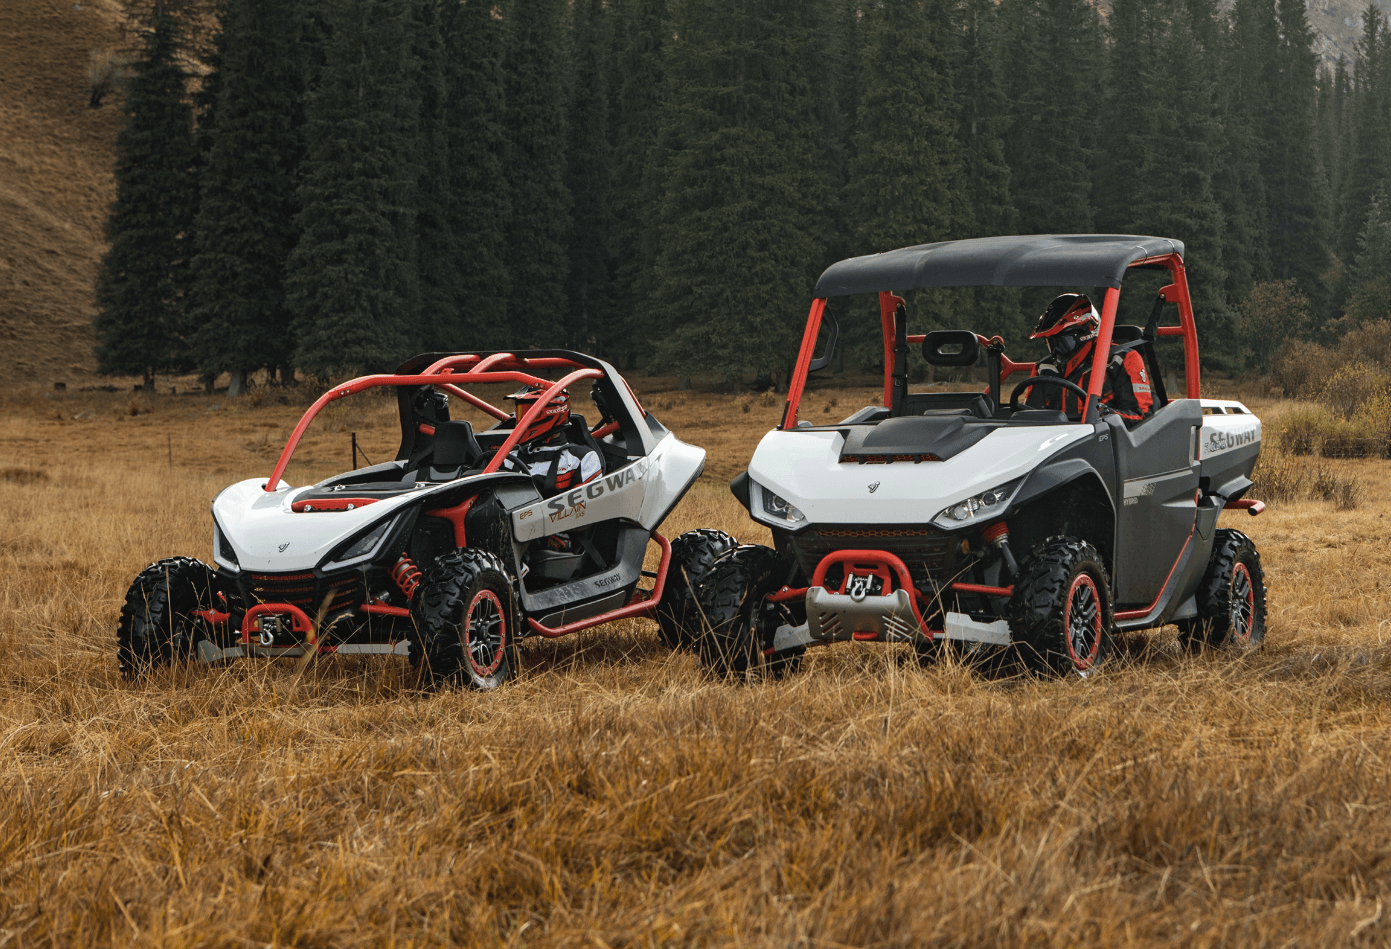 2020 Segway UTV Side by Side Product Line featuring Segway Villain and Segway Fugleman